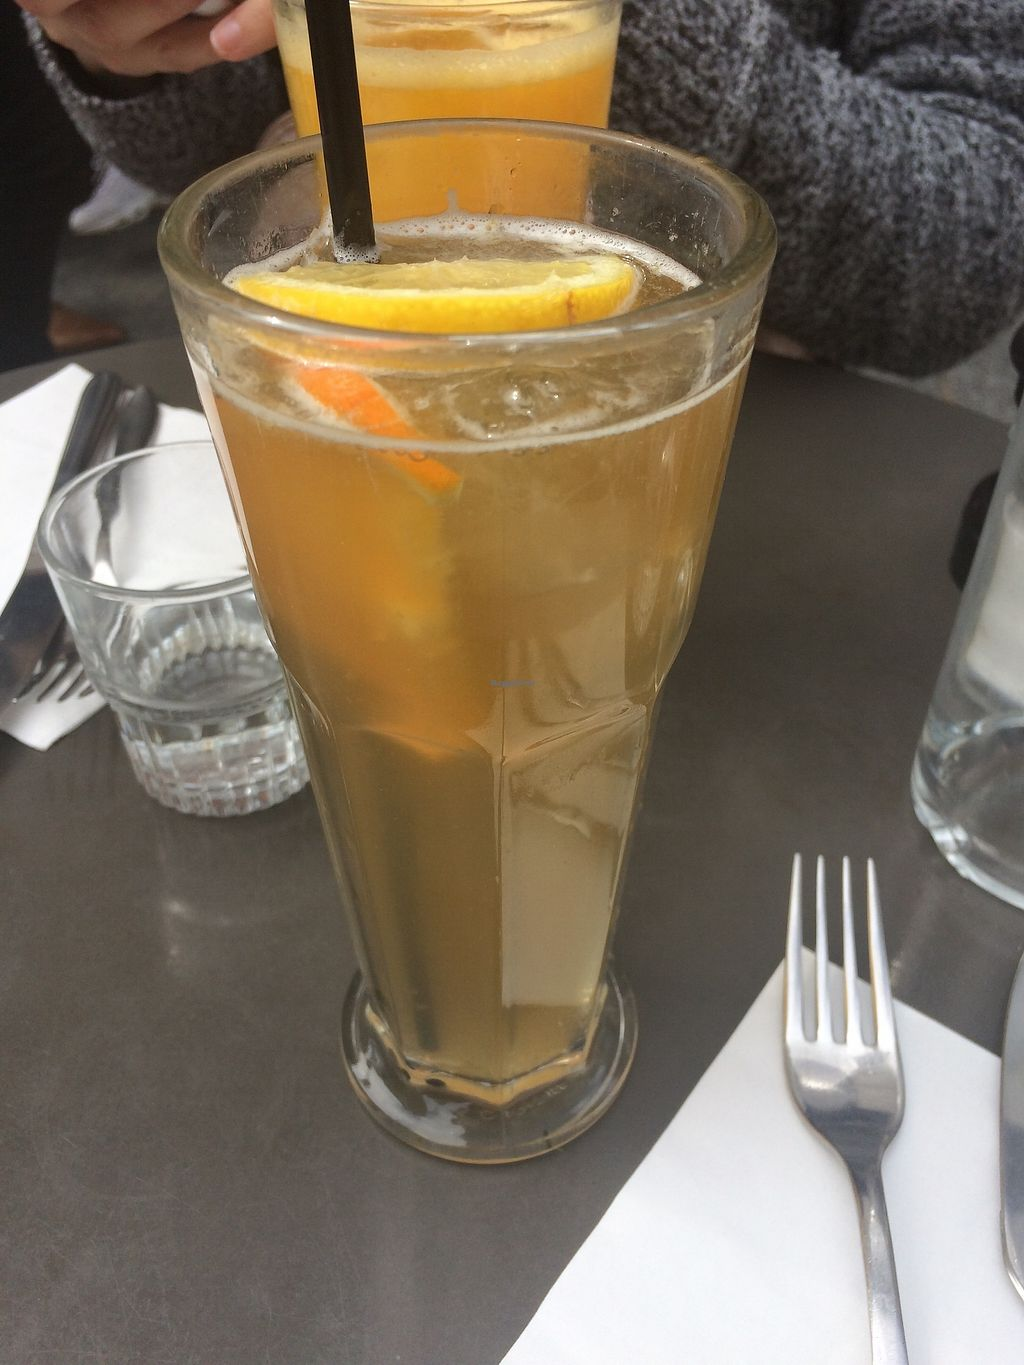 "Photo of Brasserie 2eme Art  by <a href=""/members/profile/sabrinajh"">sabrinajh</a> <br/>The iced-tea. House made.  <br/> April 13, 2018  - <a href='/contact/abuse/image/73690/385267'>Report</a>"